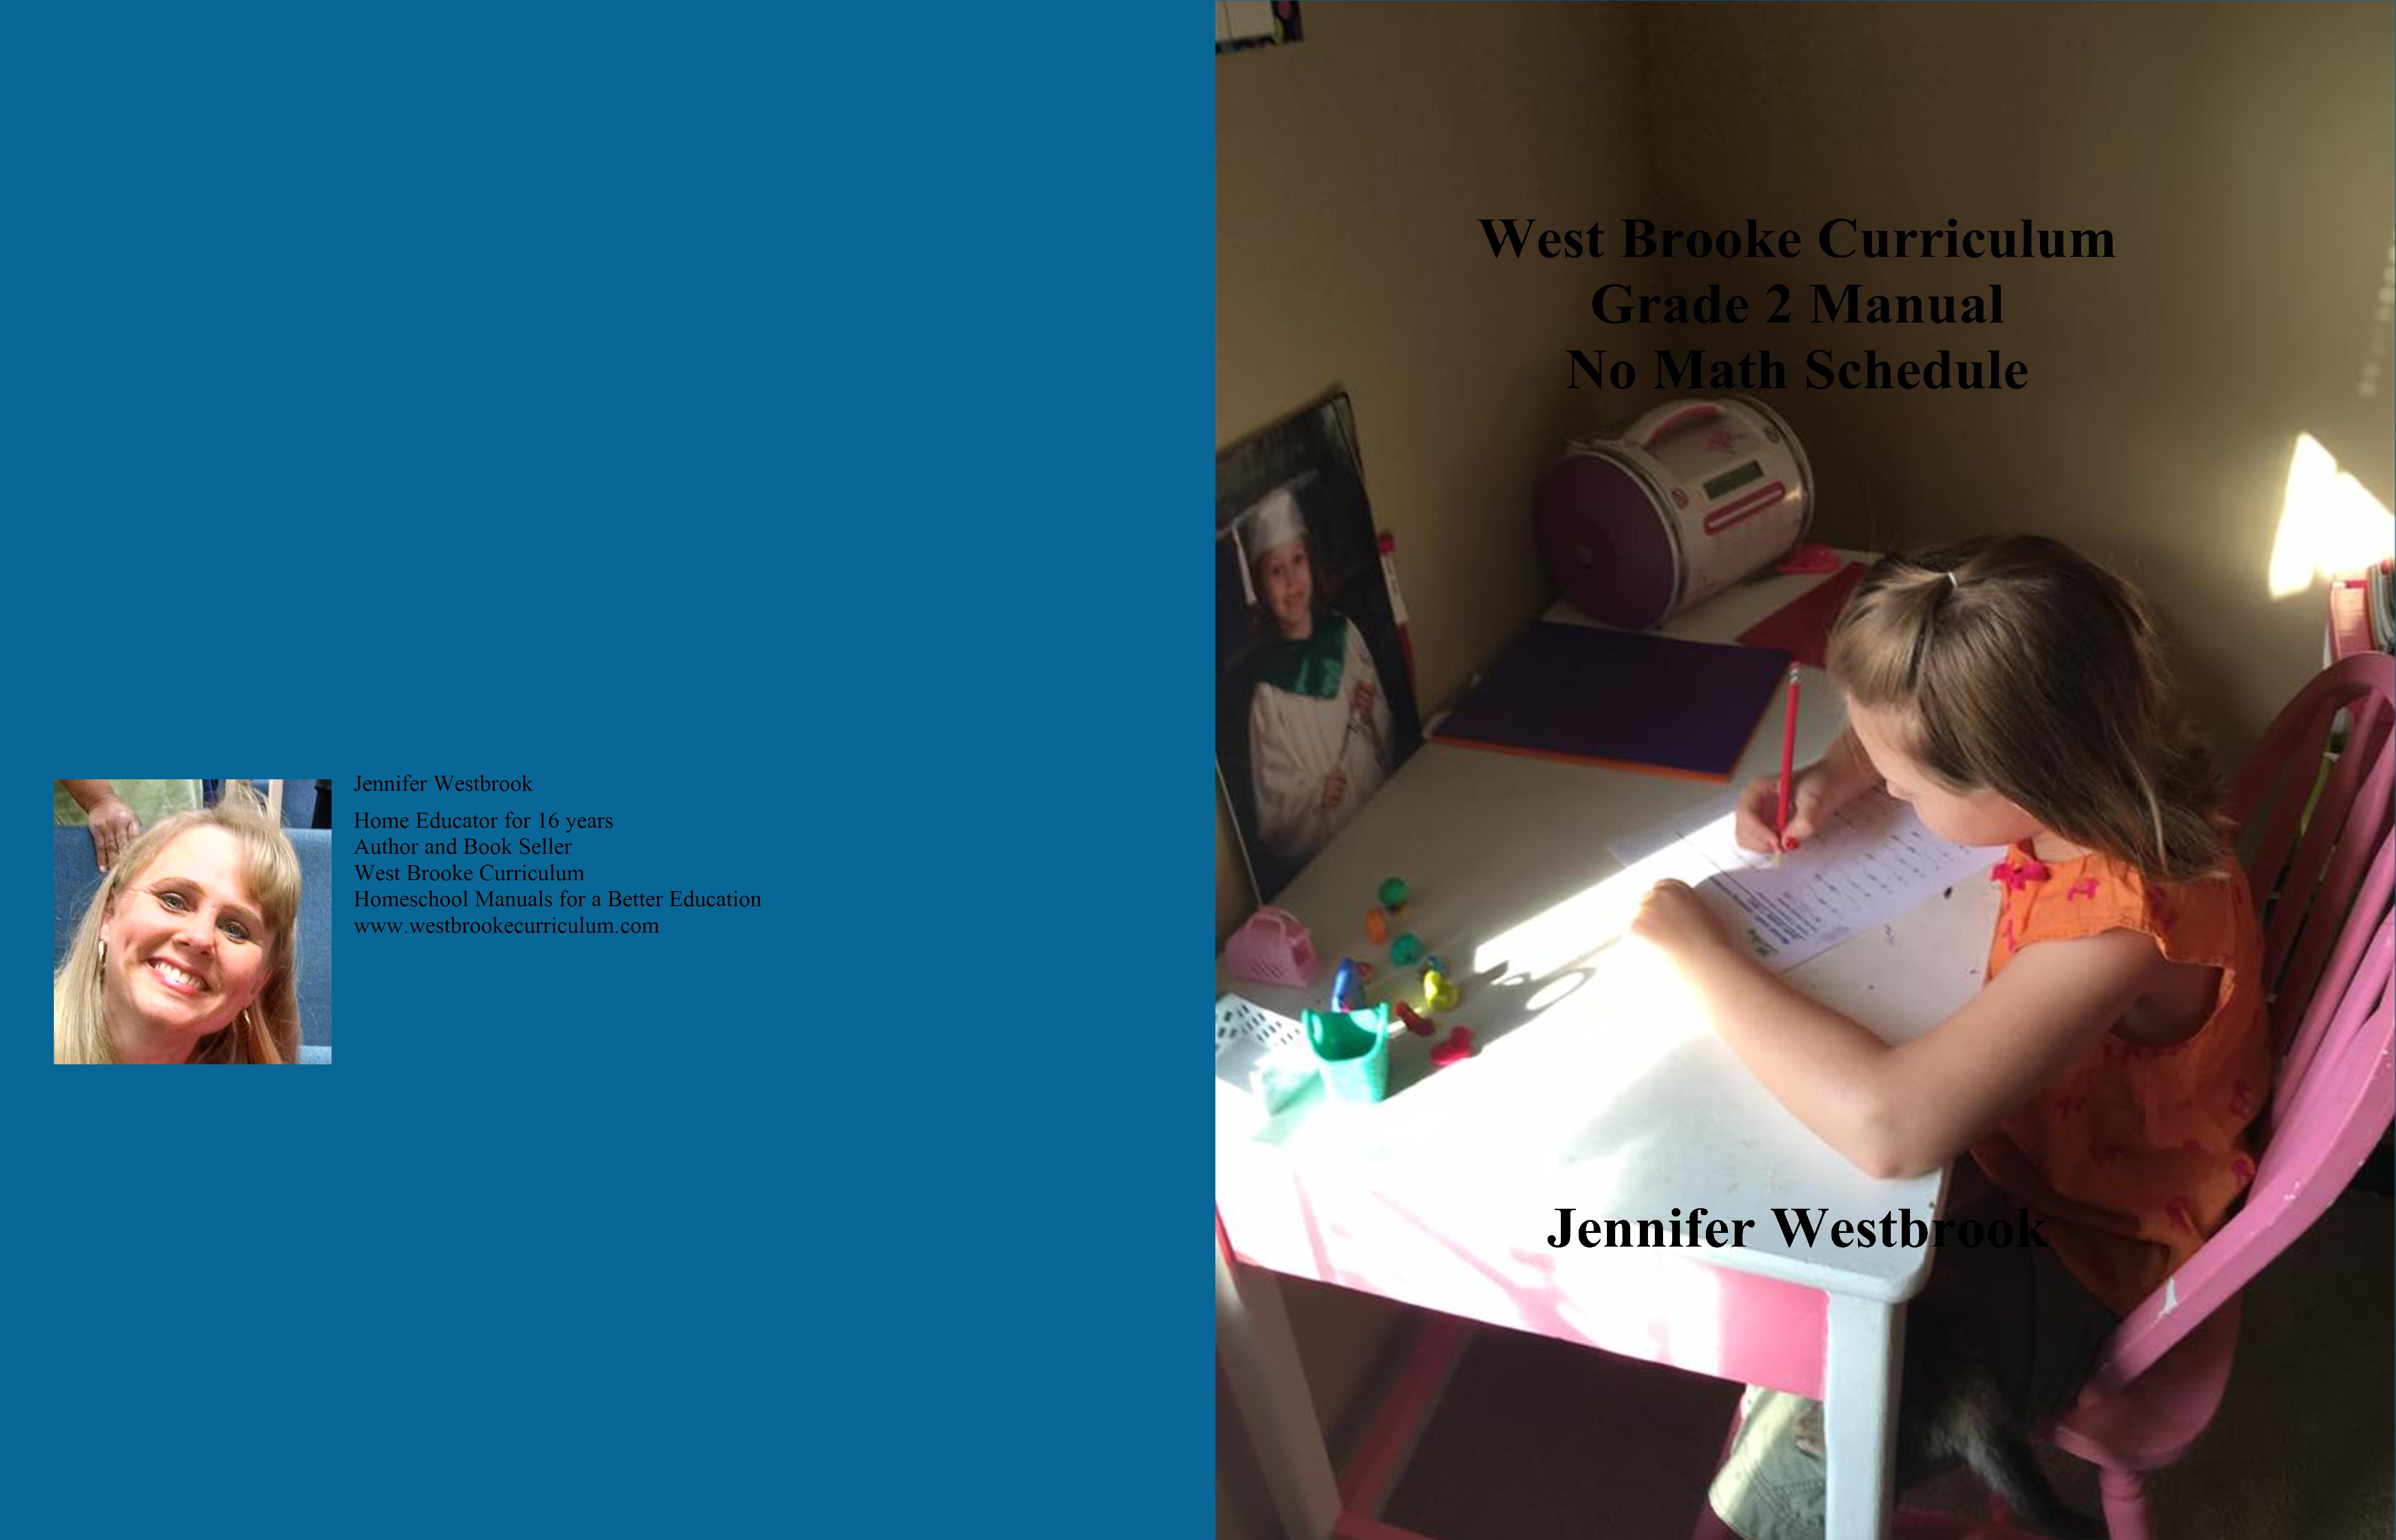 West Brooke Curriculum Grade 2 Manual No Math Schedule cover image